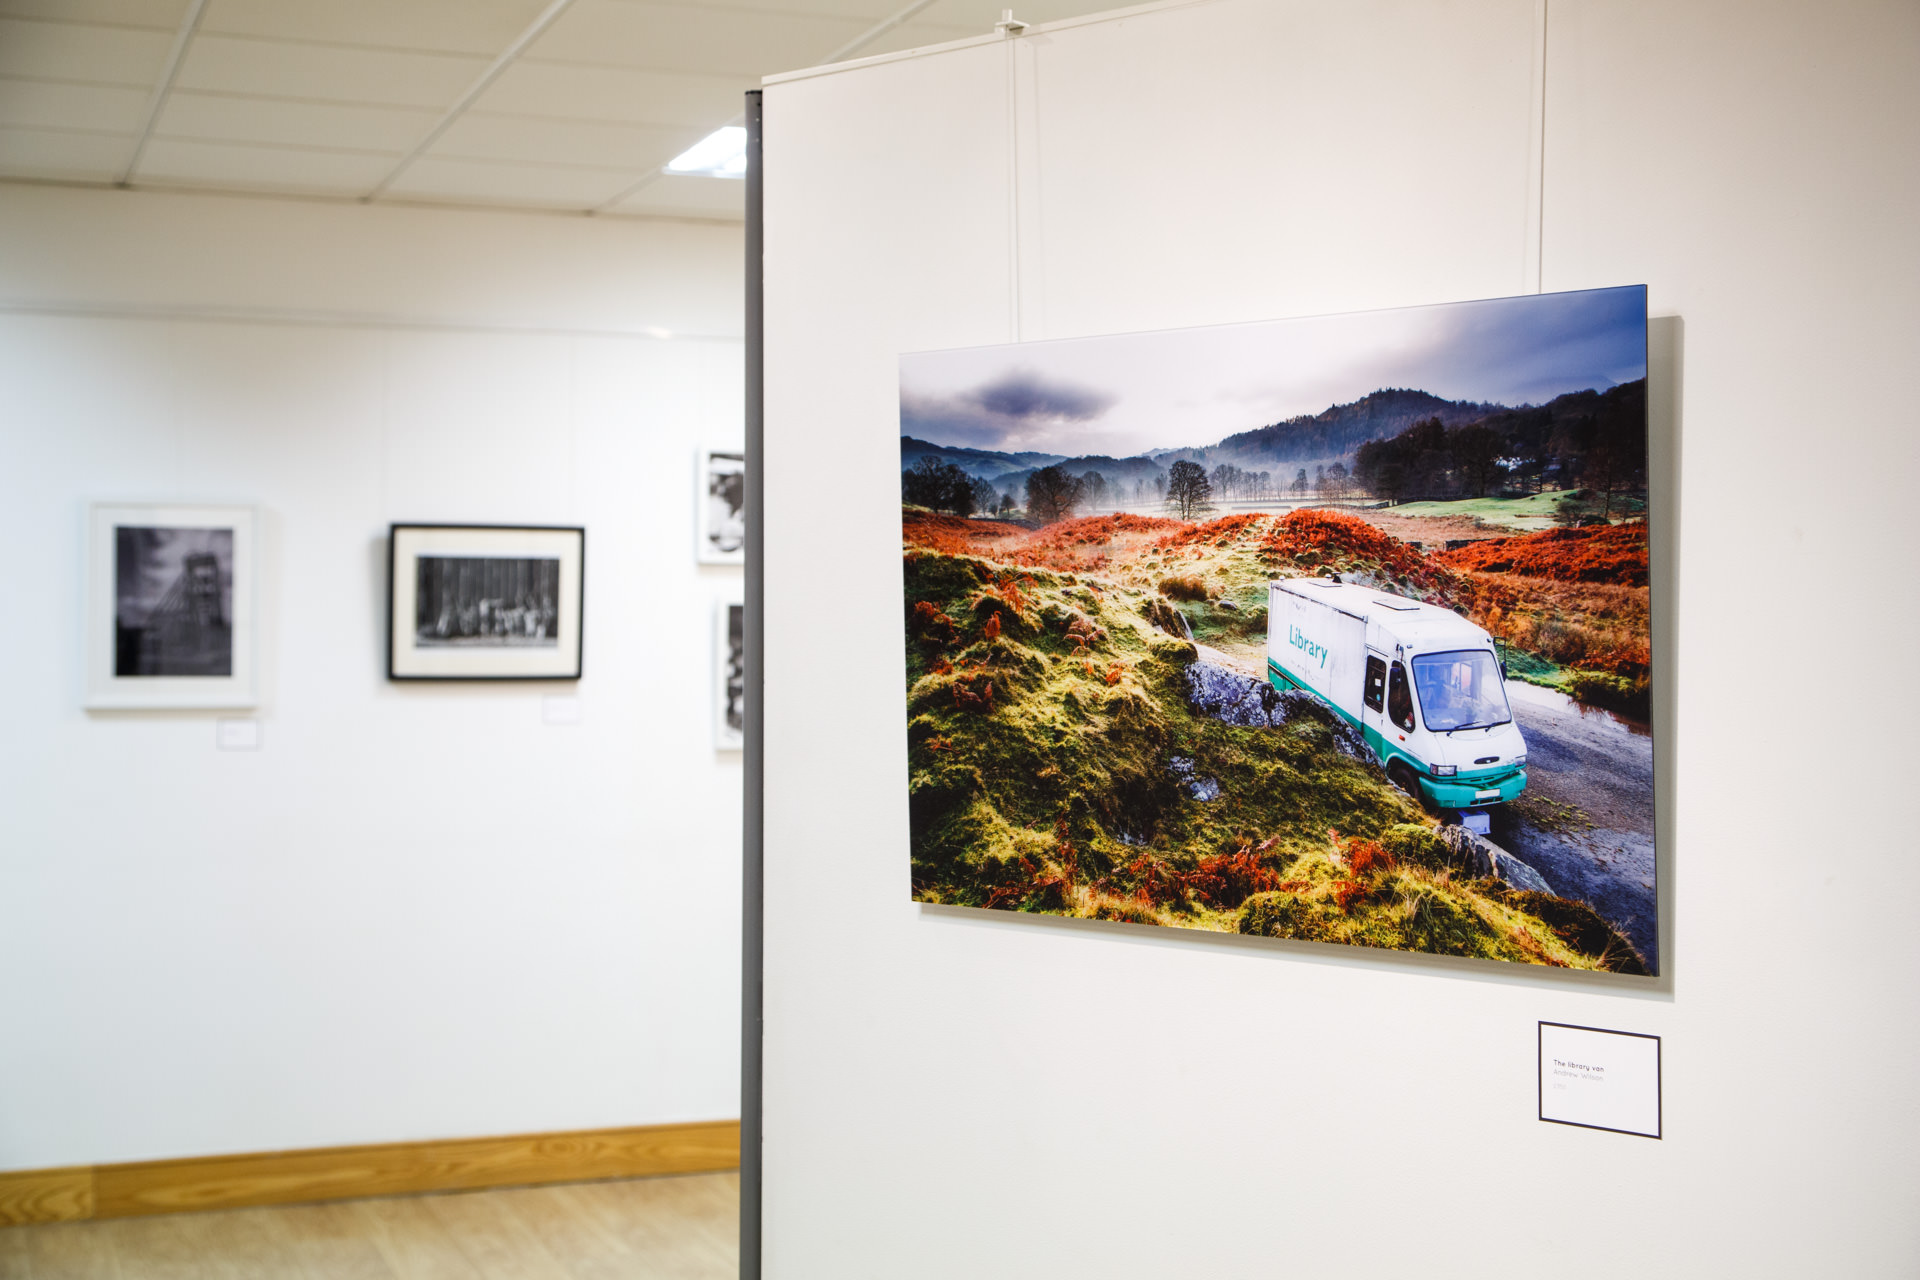 'The Library Van' on display at the 2015 WCAF Photography Open.